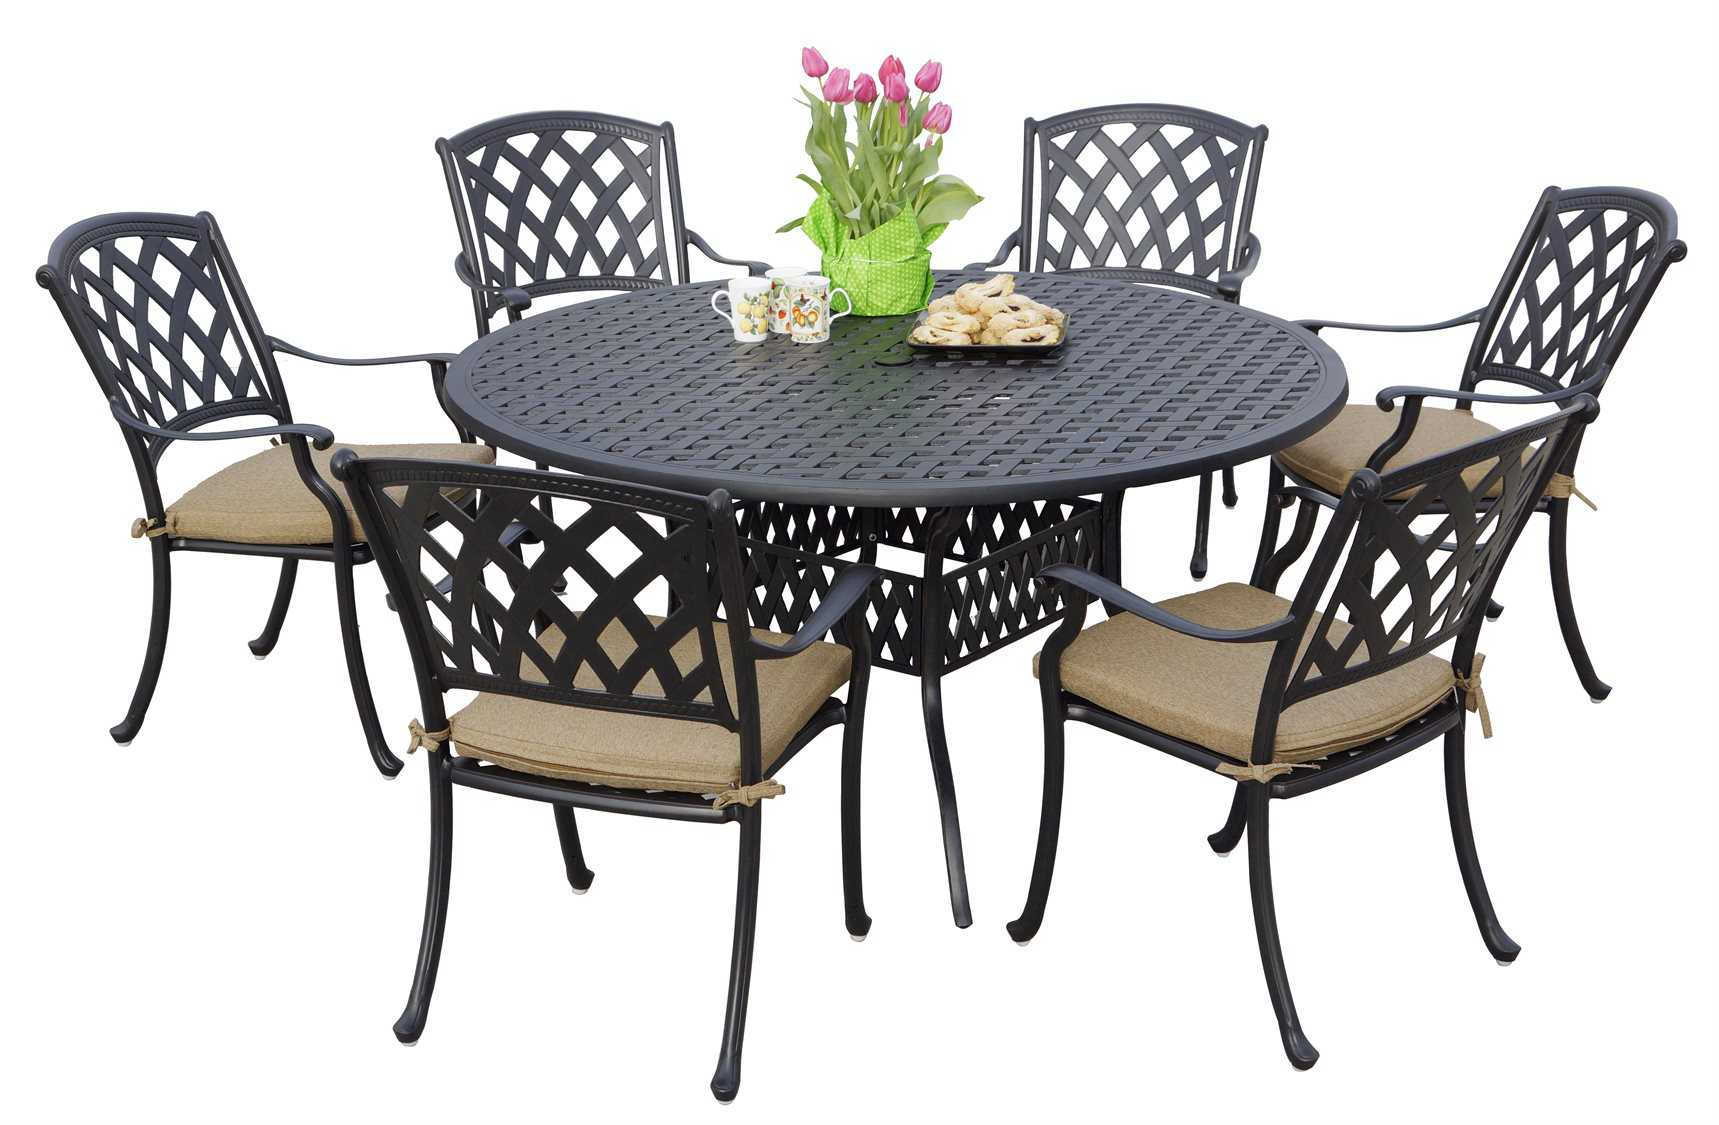 Outdoor Dining Sets on Sale